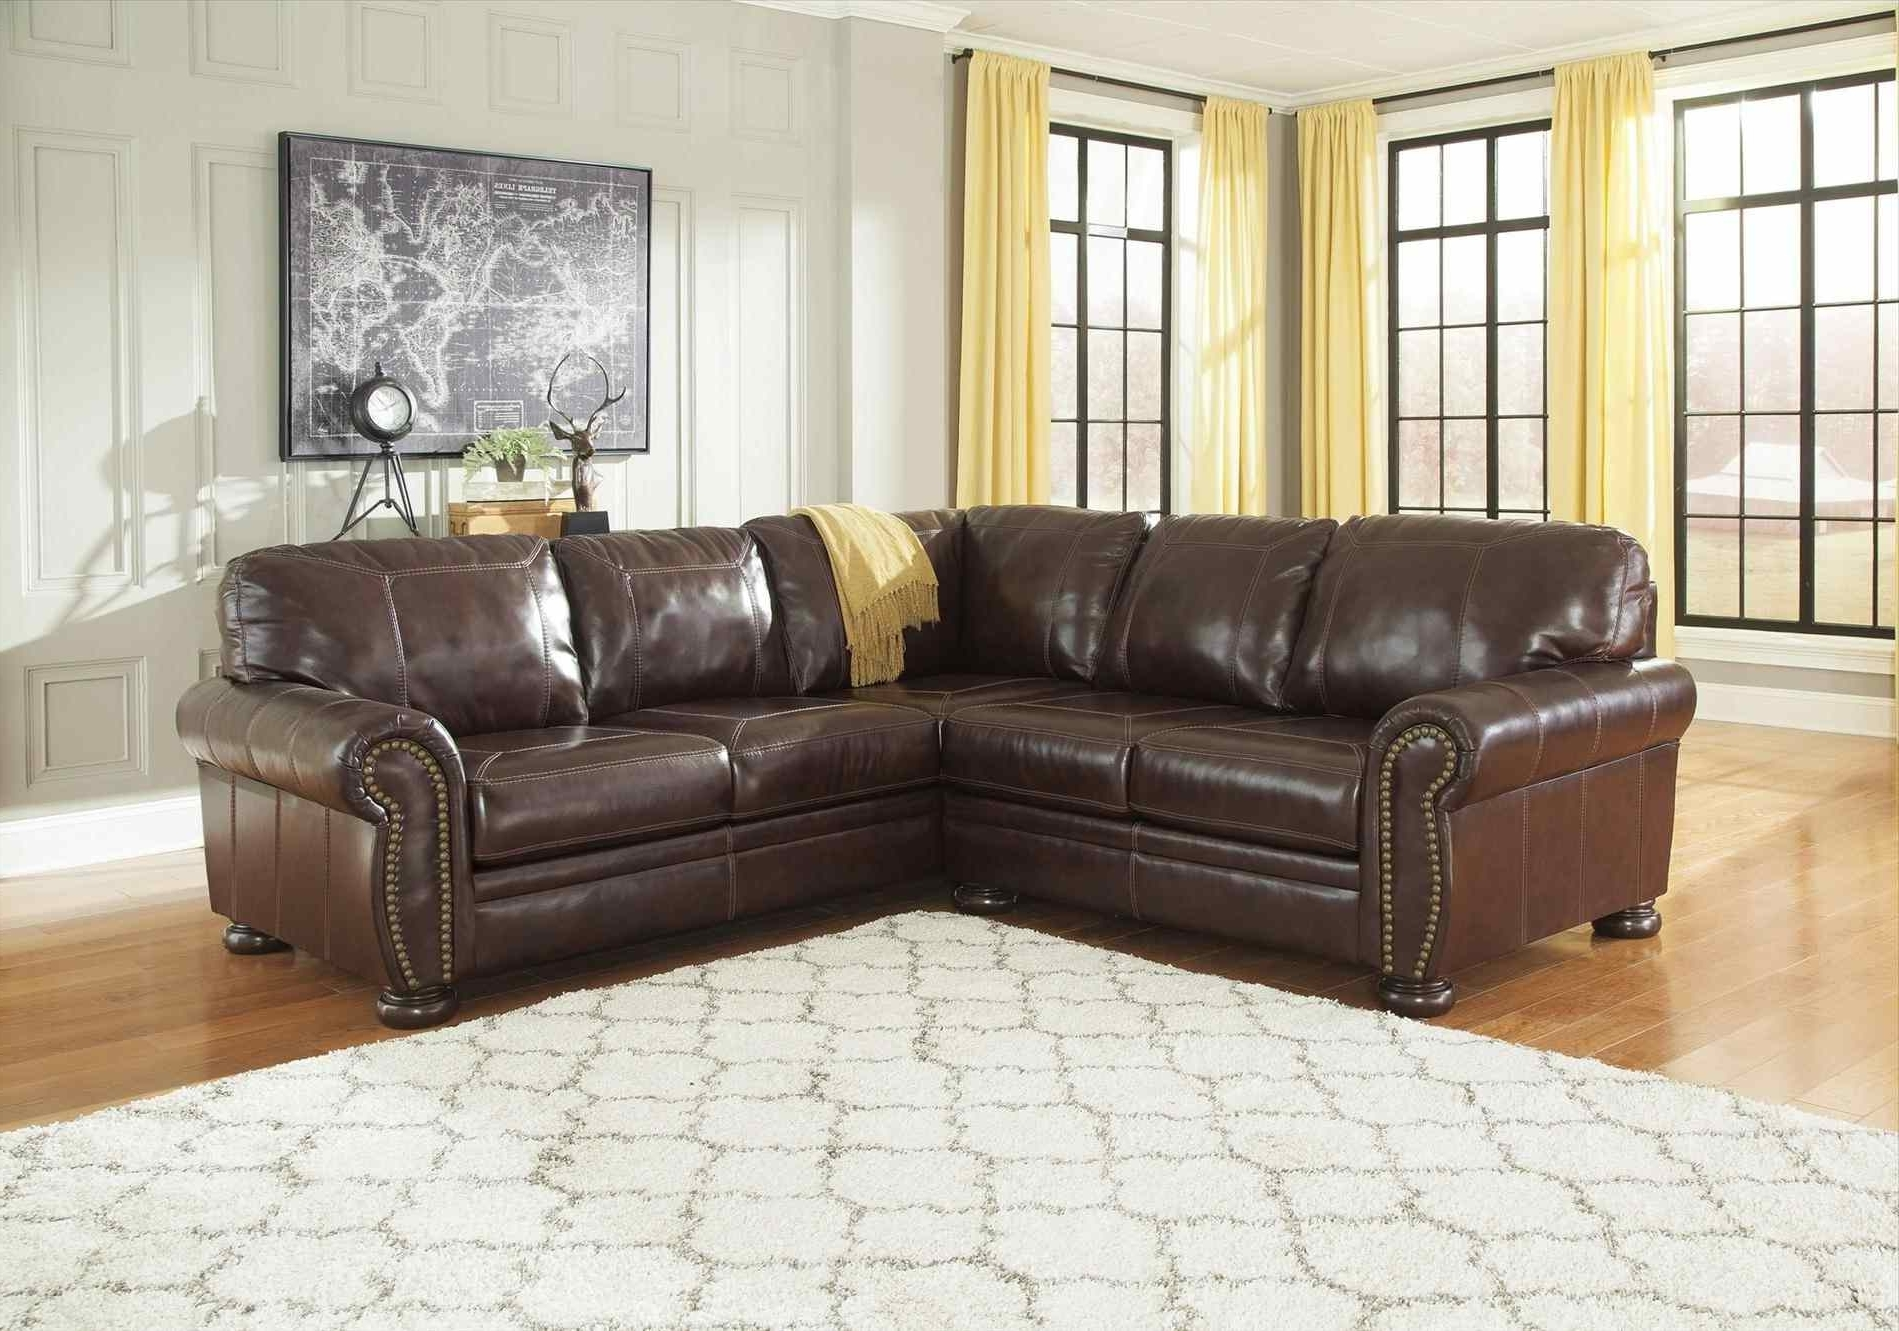 Nj Sectional Sofas In Popular Couch : Genuine Leather Couches Kramfors Lshape Sectional Youtube (View 4 of 20)